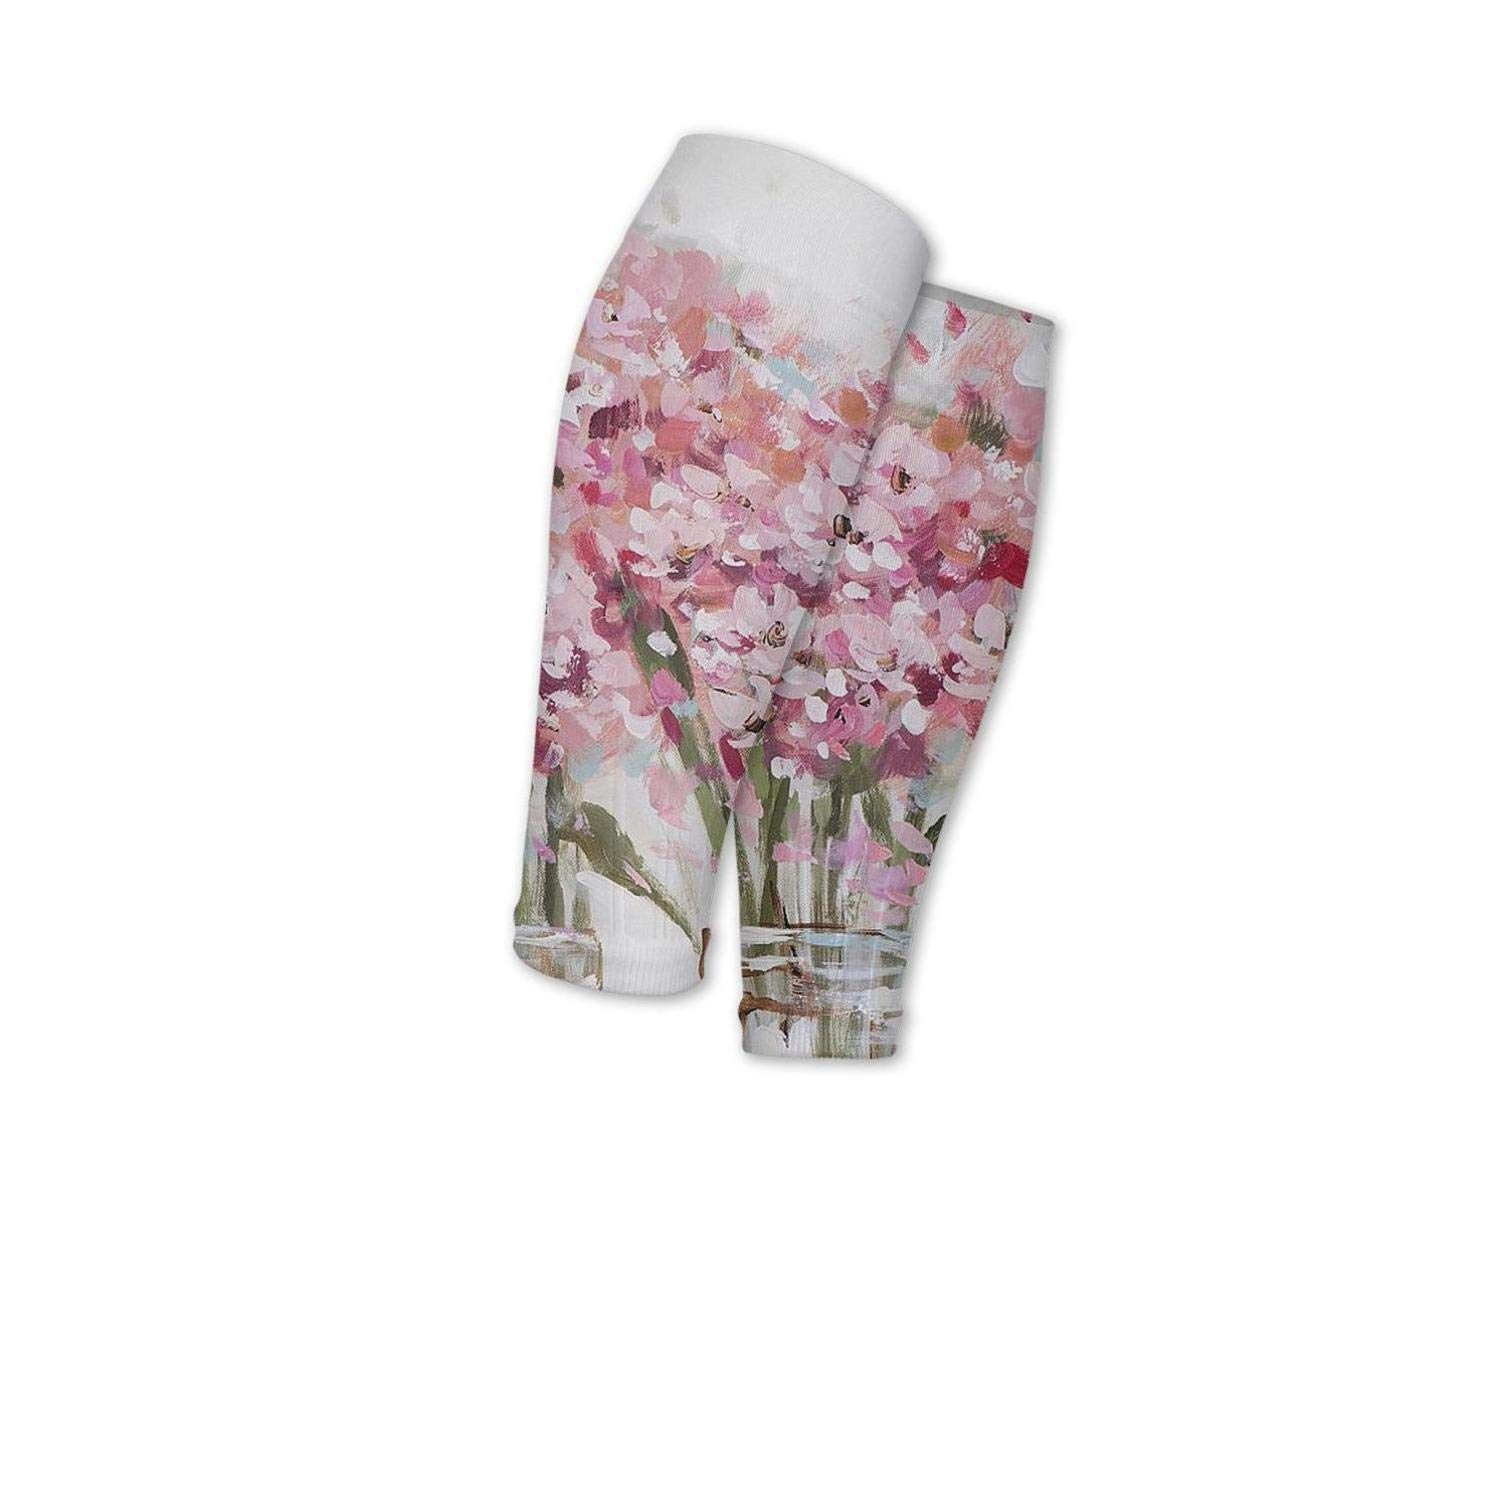 Smilelolly Oil Painting Pink Flower Calf Compression Sleeves Helps Calf Guard Leg Sleeves for Men Women